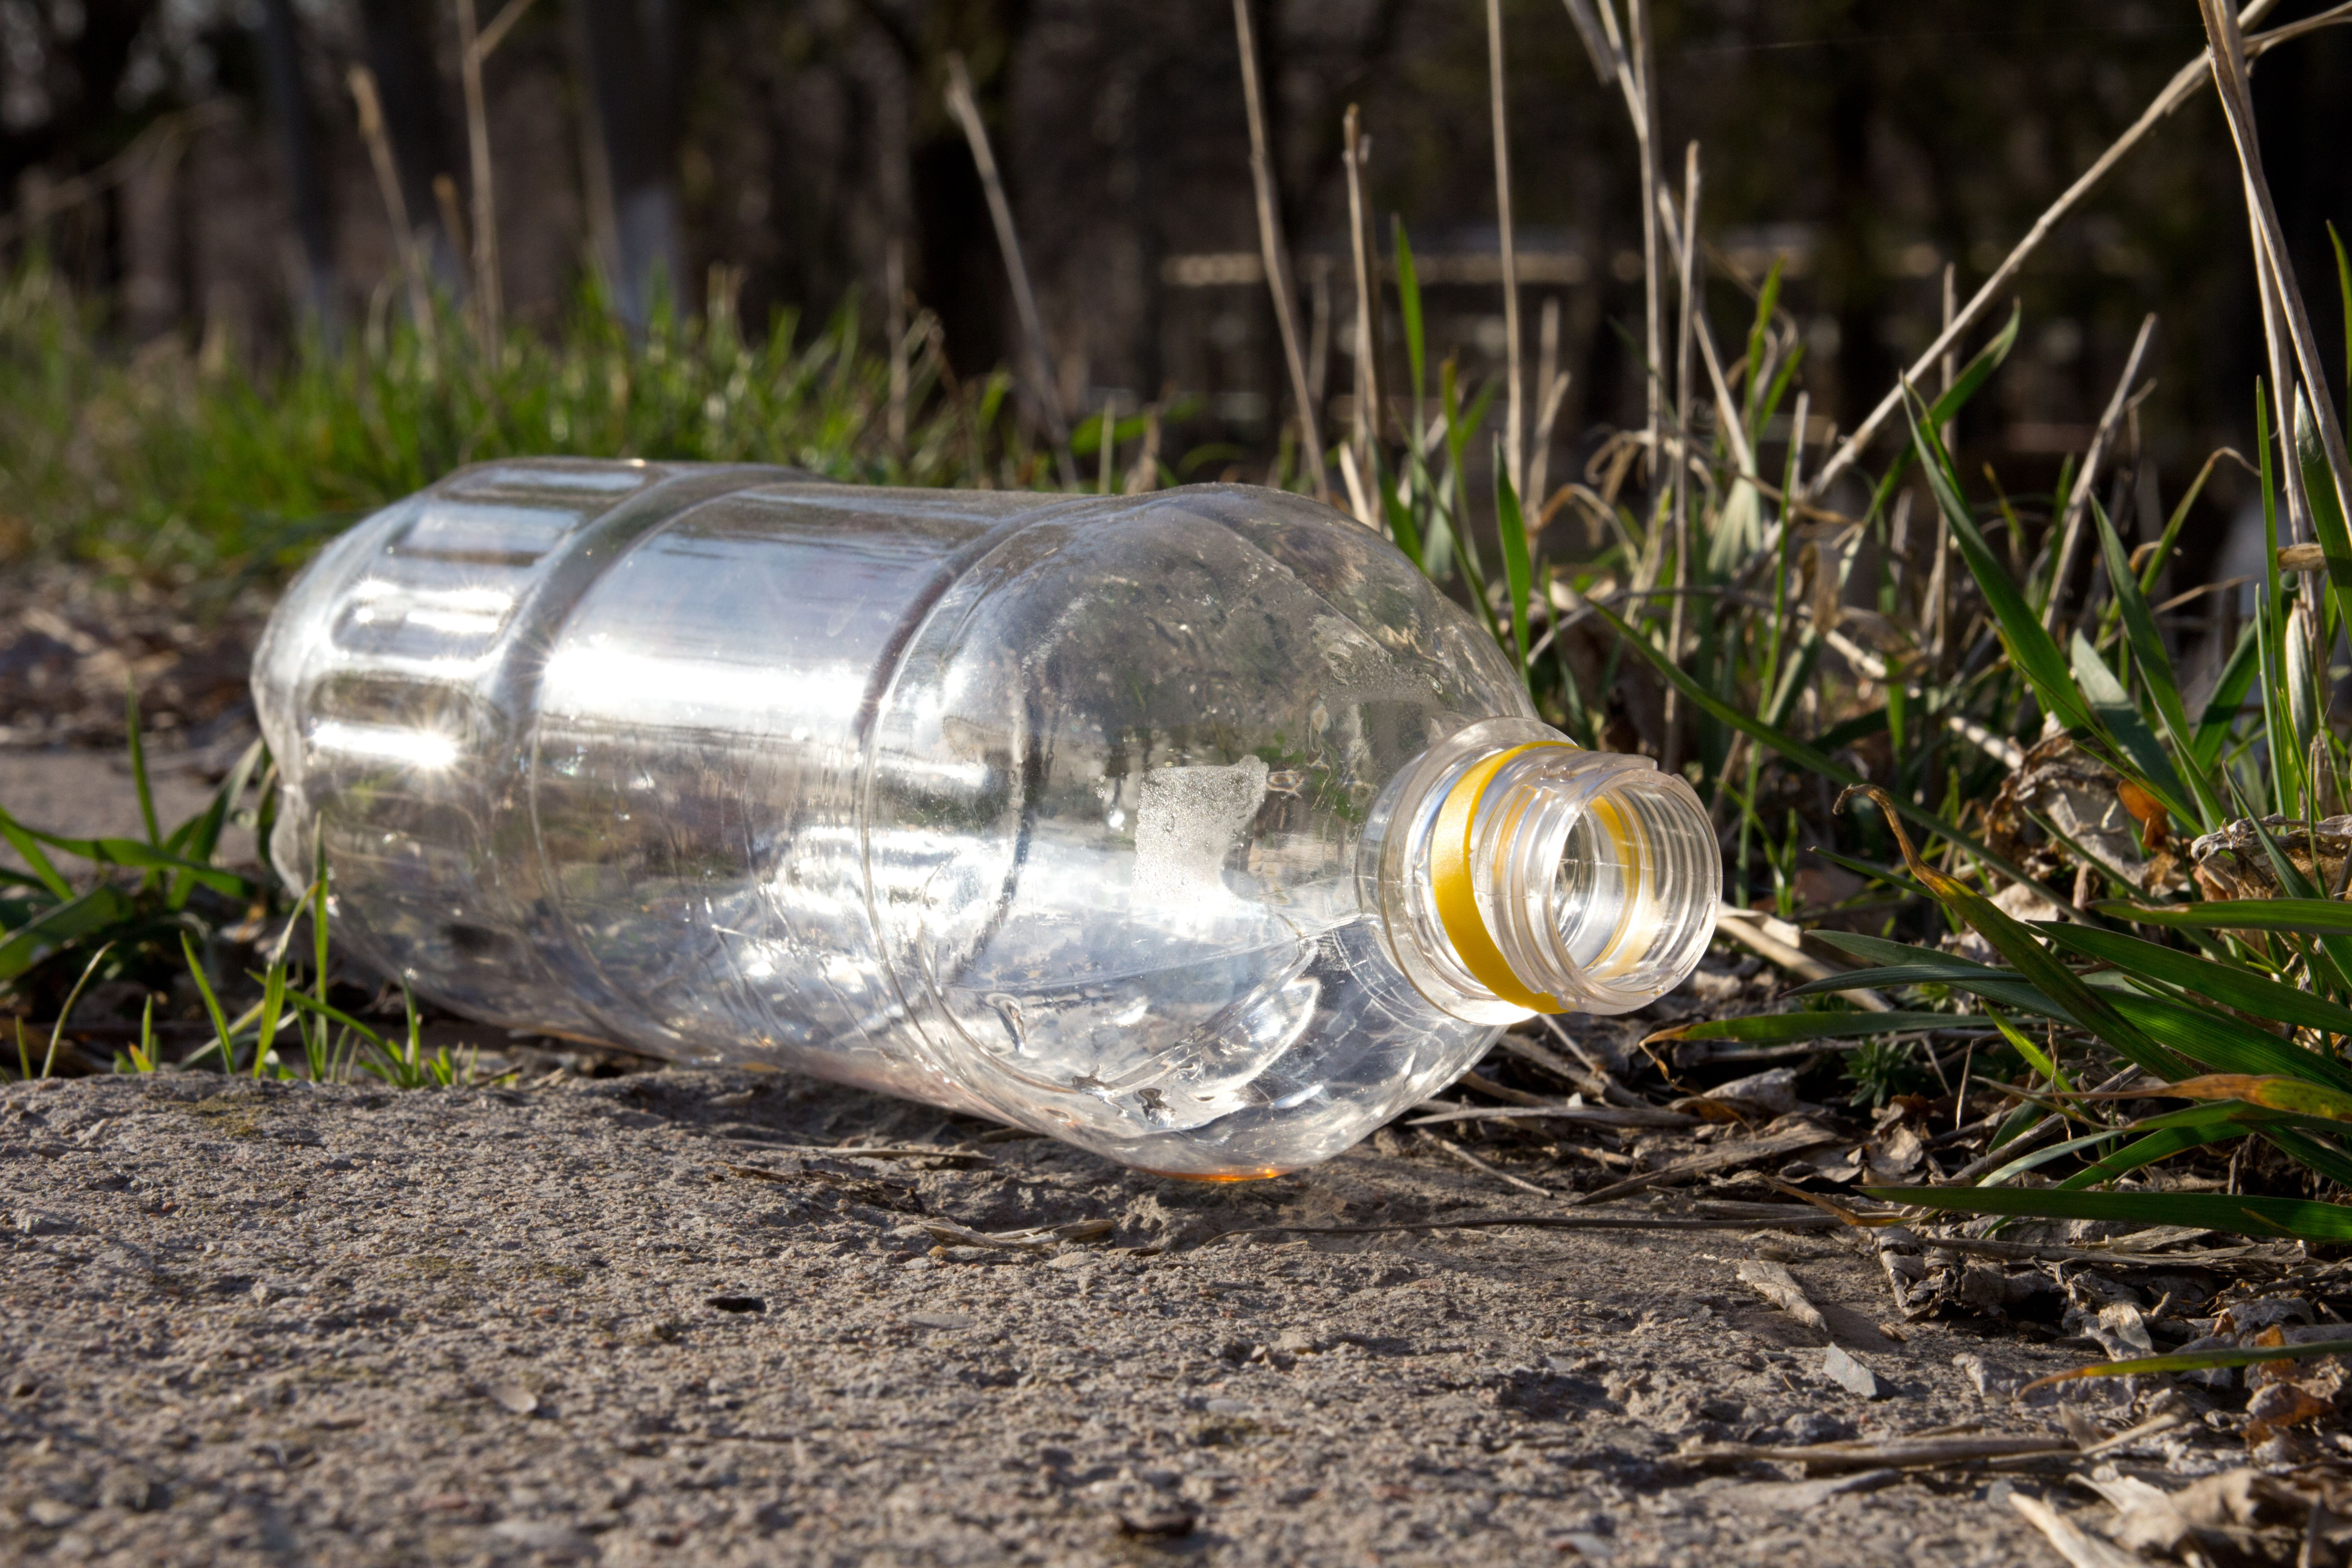 Different kinds of plastic can degrade at different times, but the average time for a plastic bottle to completely degrade is at least 450 years. It can even take some bottles 1000 years to biodegrade